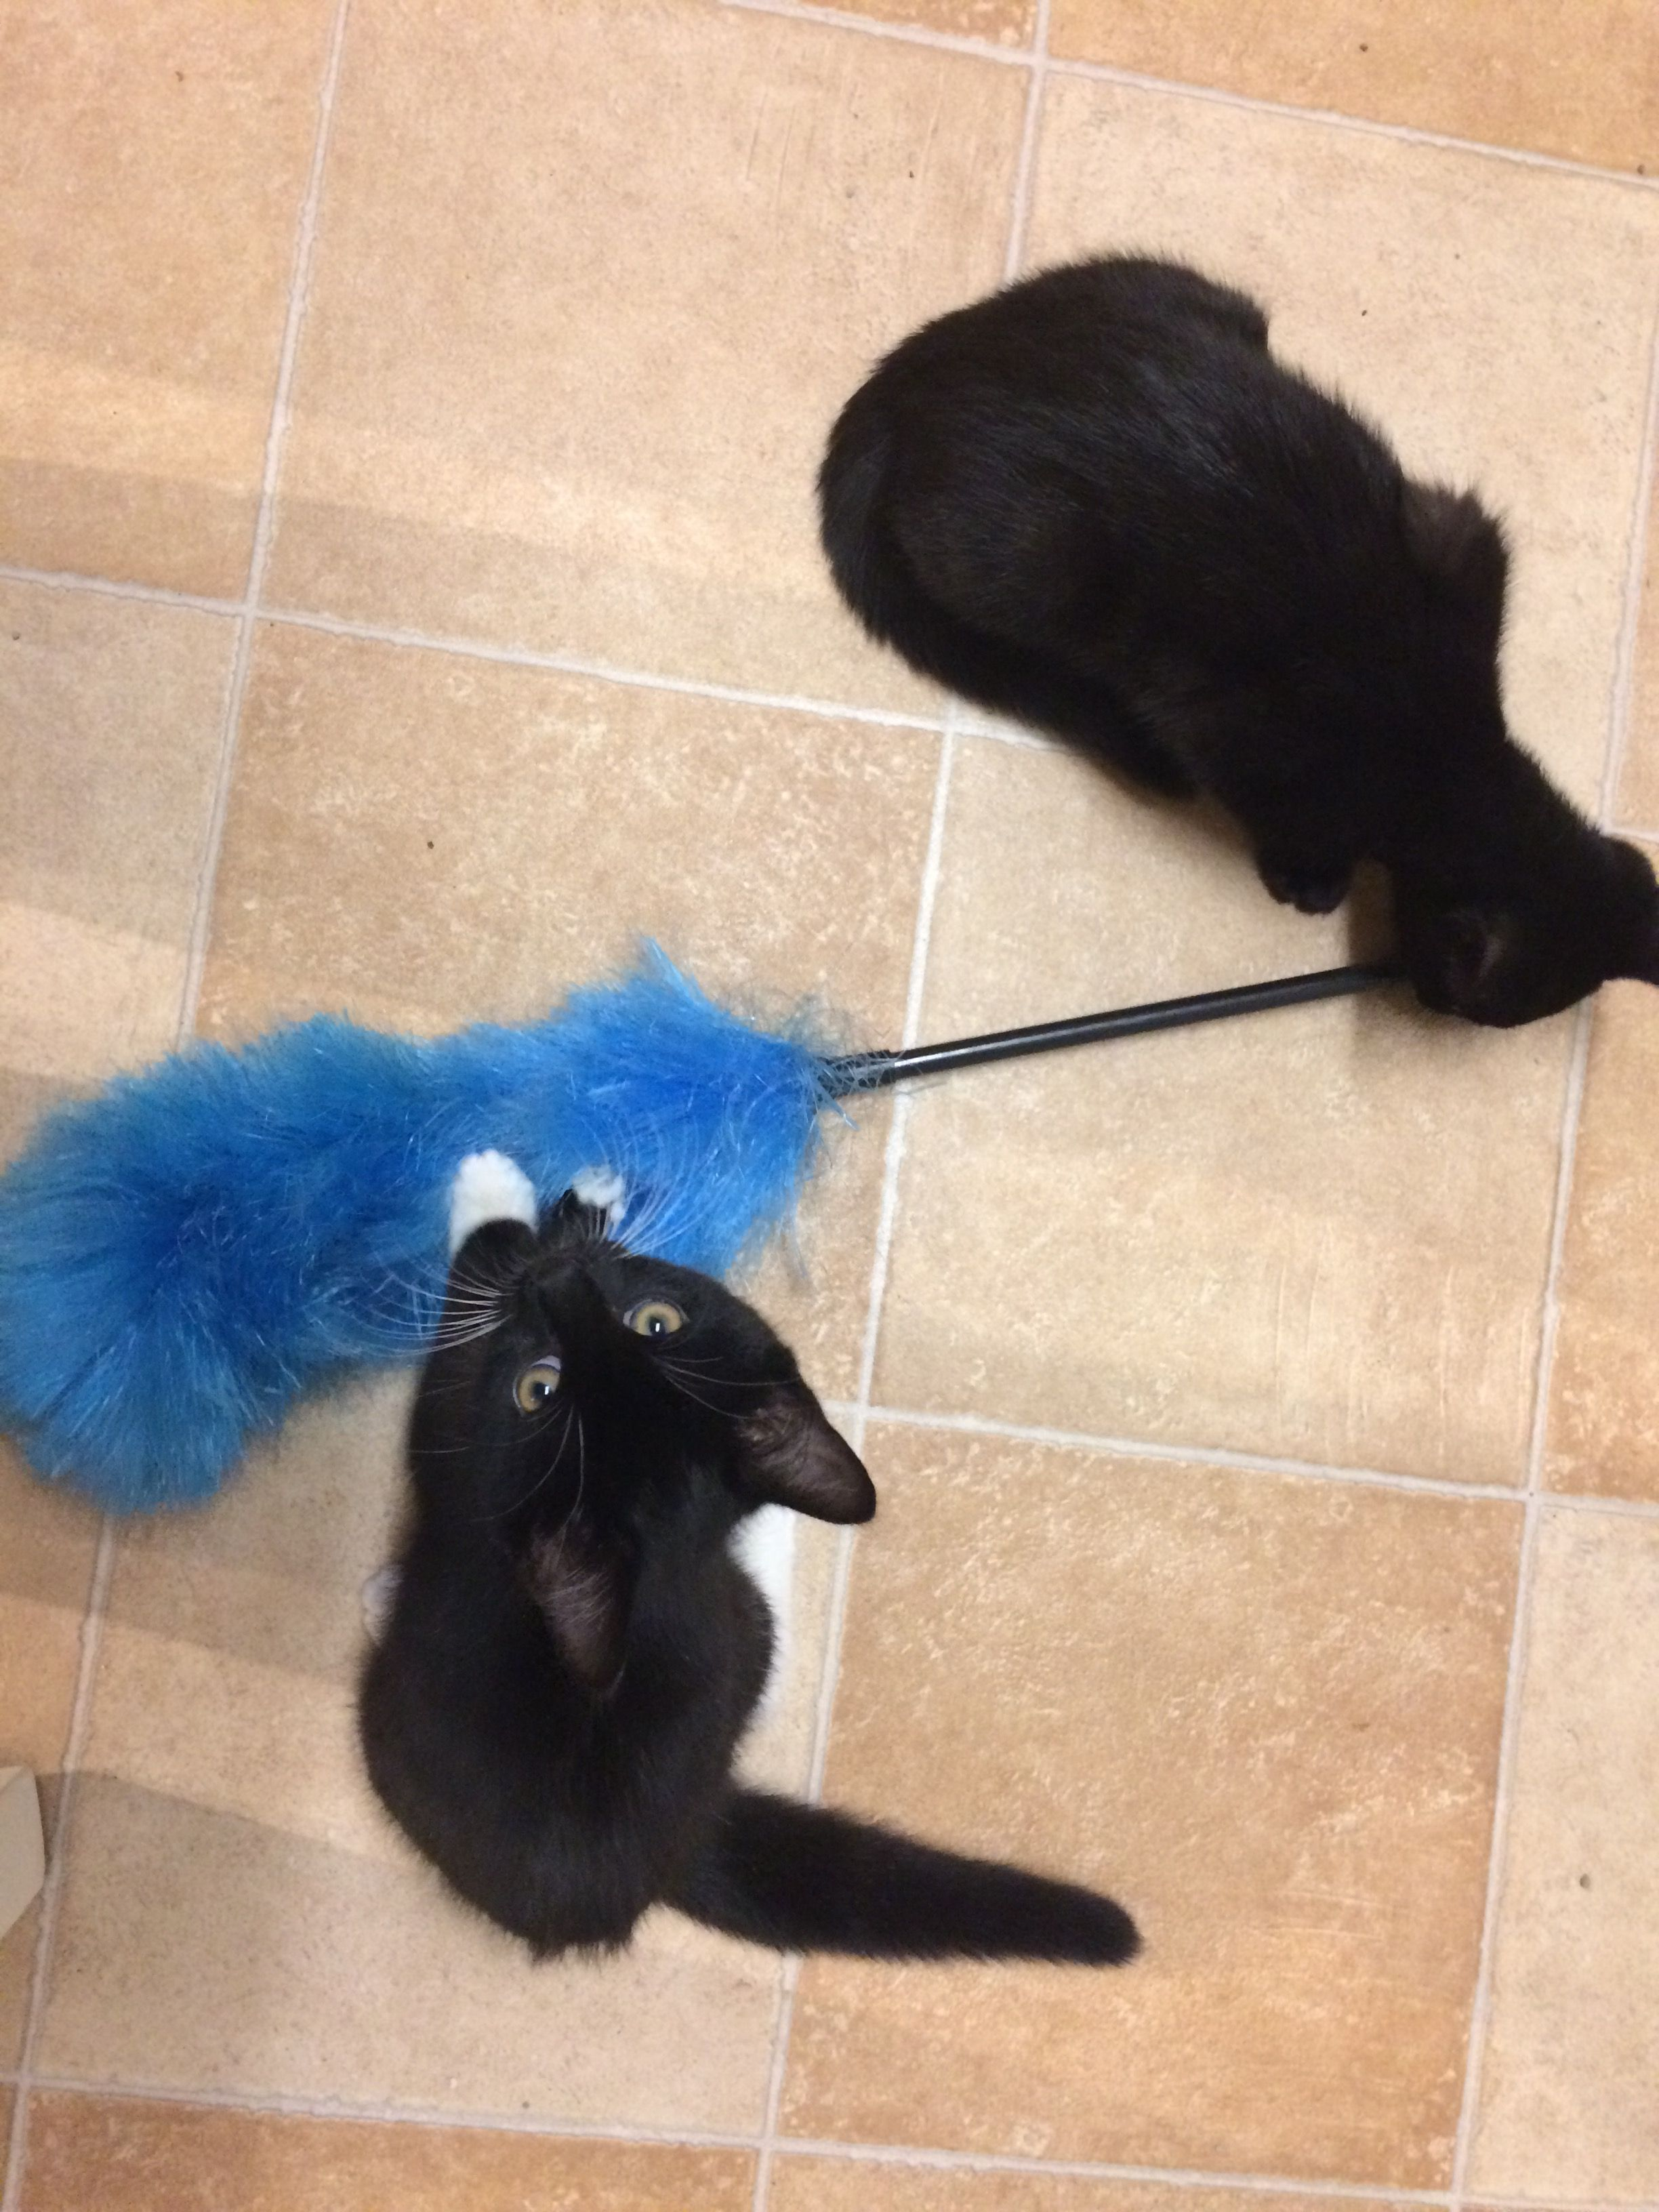 10 Things That Are Near Impossible To Do When You Have 2 Crazy Kittens Number 4 Housework Crazy Cats Black Kitten Kittens